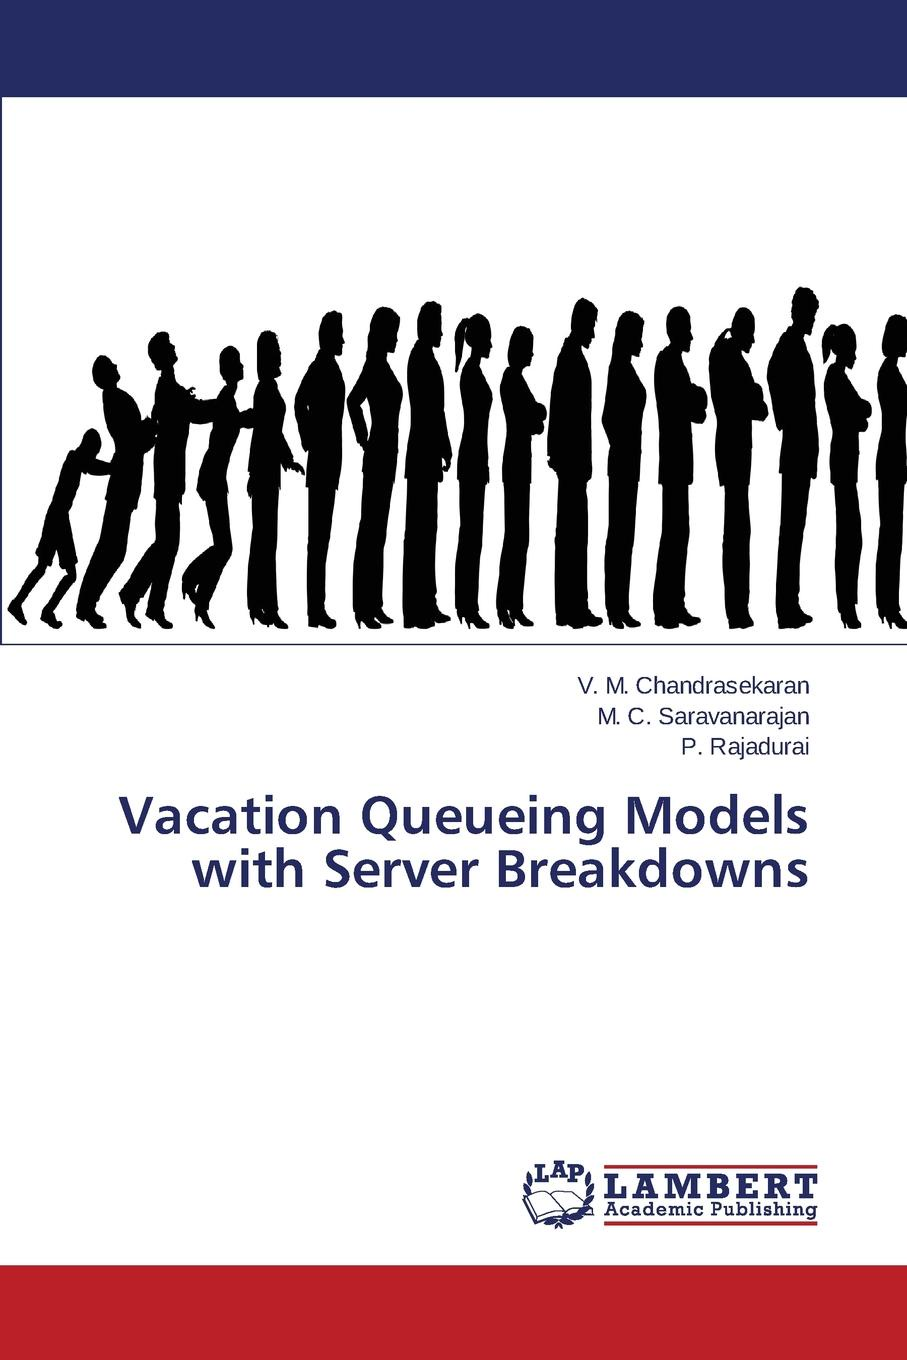 Chandrasekaran V. M., Saravanarajan M. C., Rajadurai P. Vacation Queueing Models with Server Breakdowns